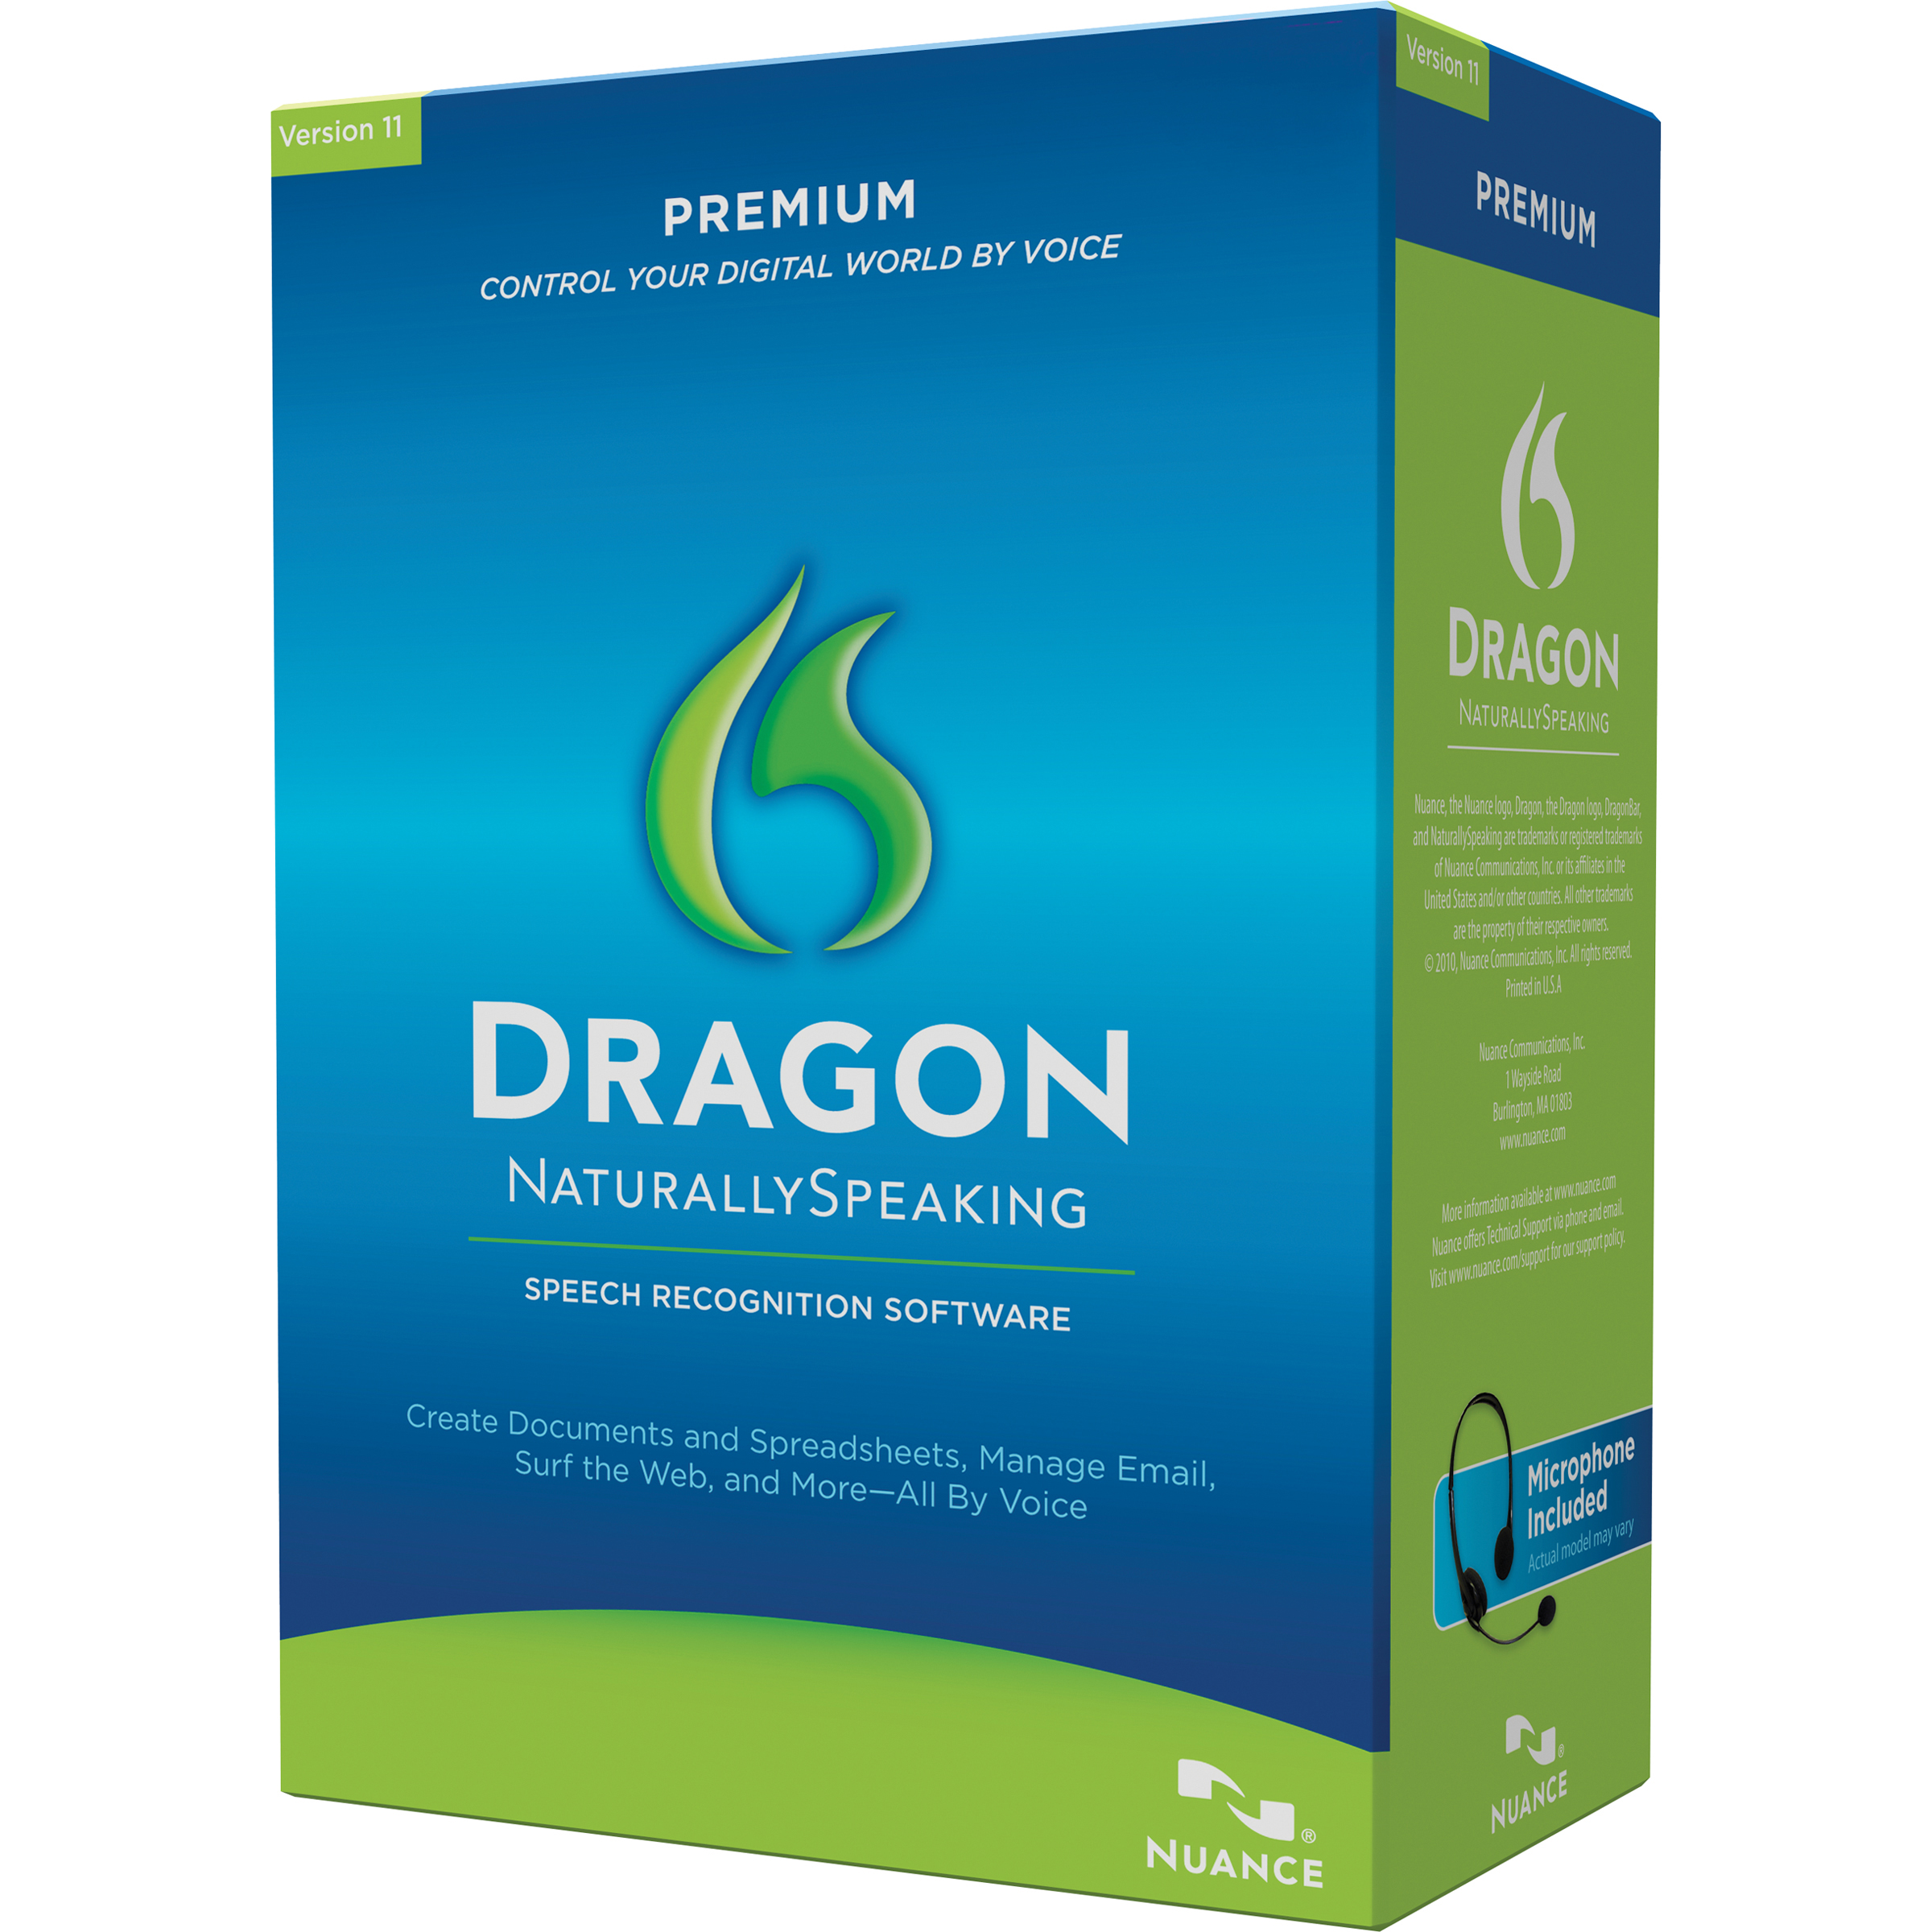 Dragon NaturallySpeaking Premium 11.0